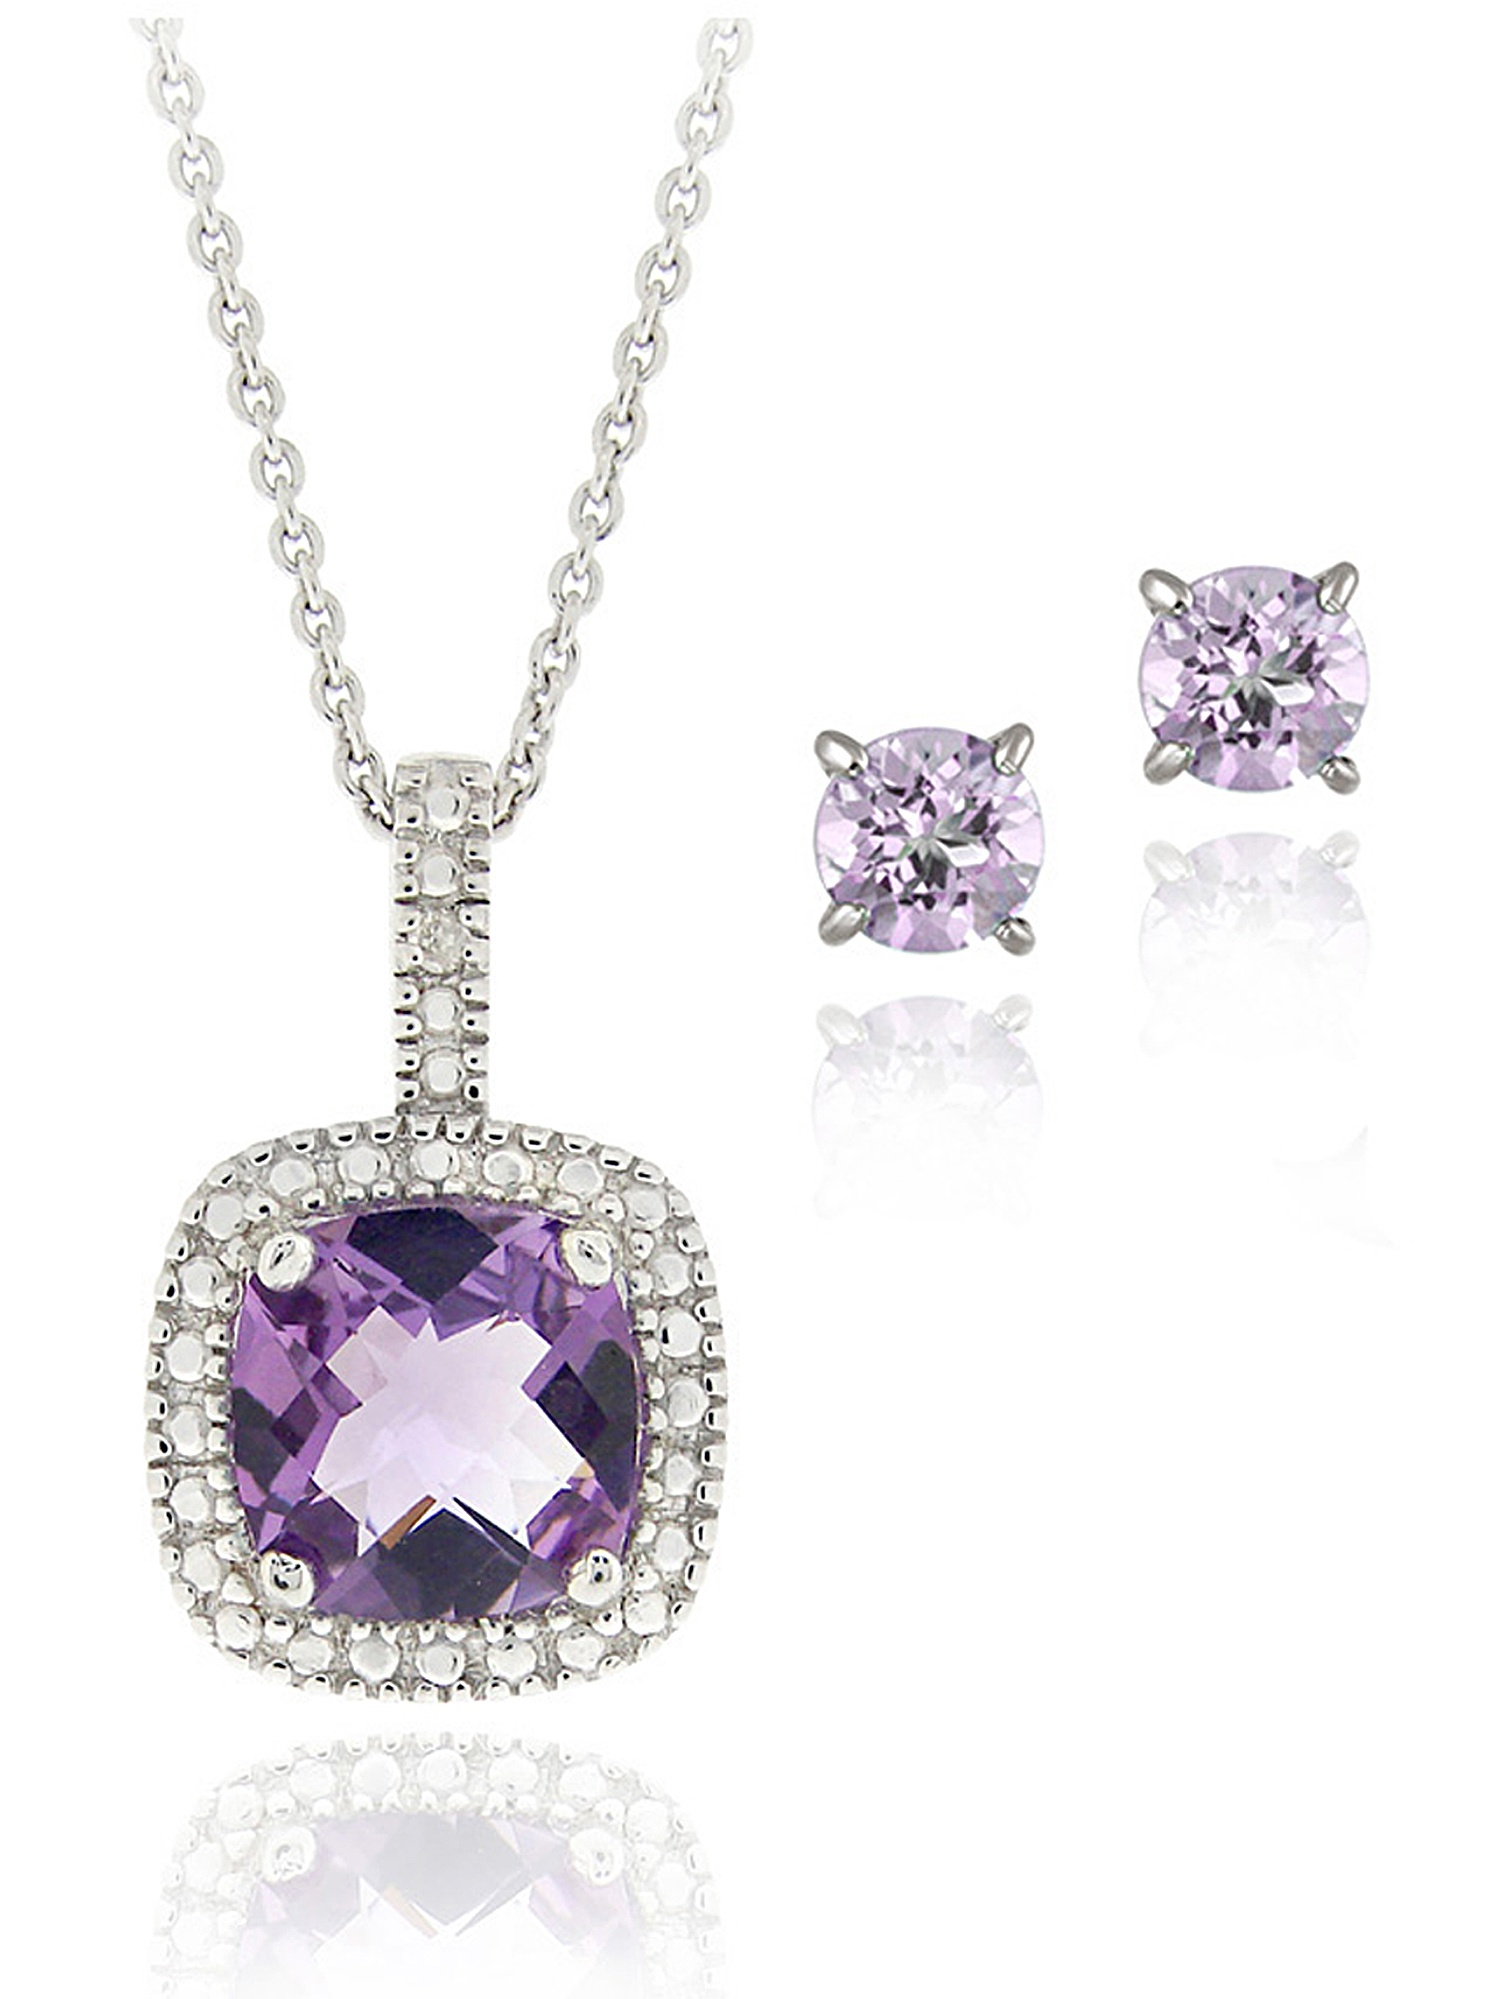 2.85 Carat T.G.W. Amethyst and Diamond Accent Sterling Silver Square Necklace and Earrings Set